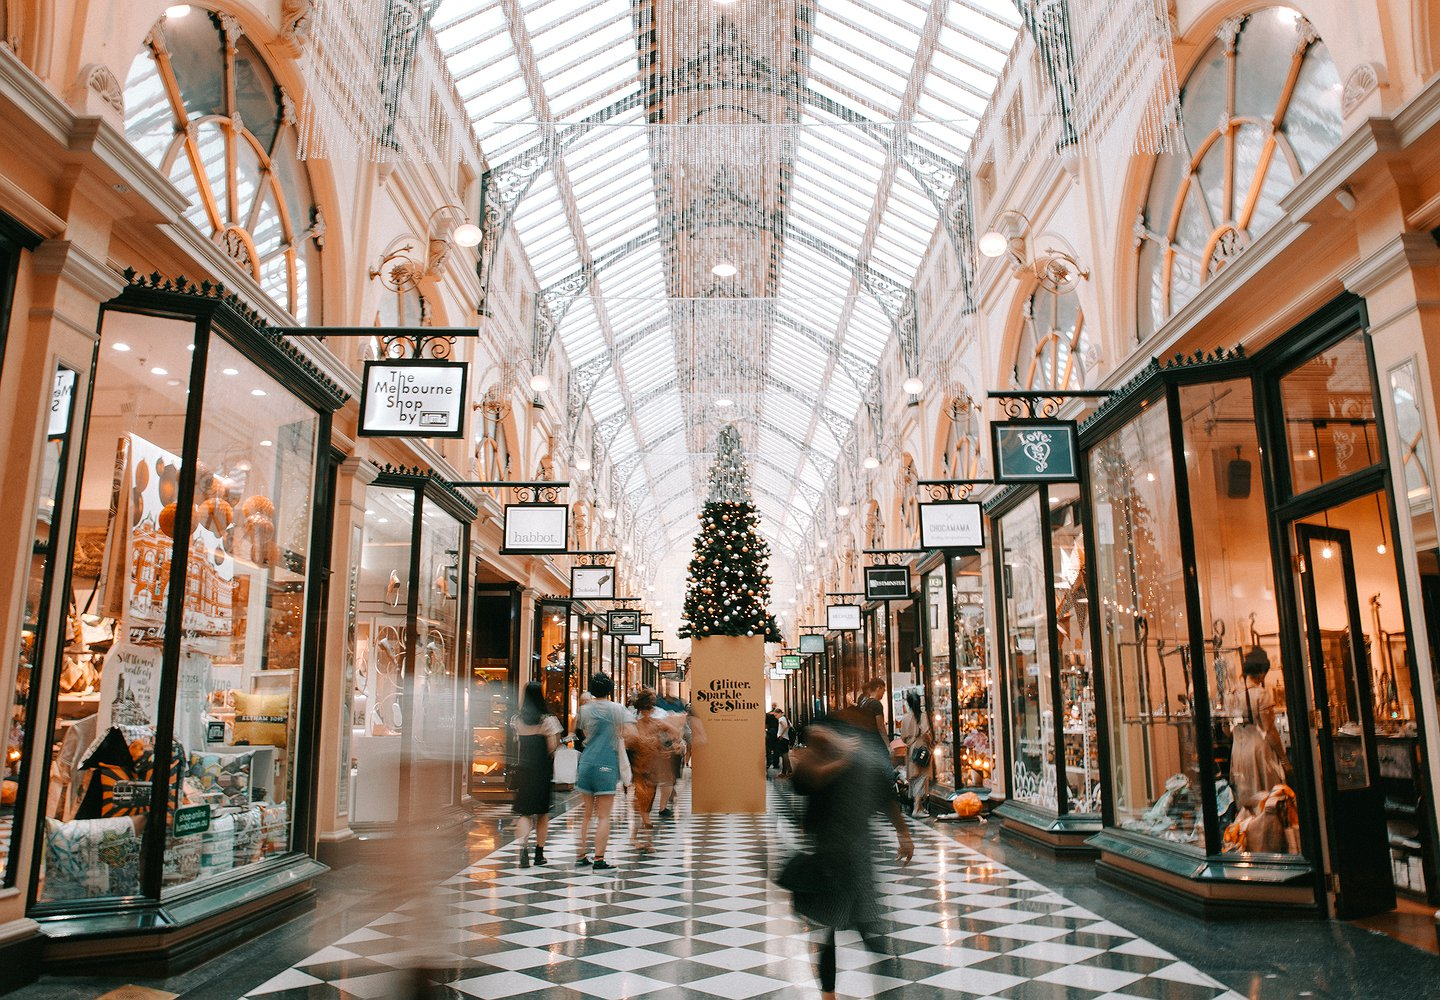 How Retailers Are Enticing Consumers to Purchase This Holiday Season